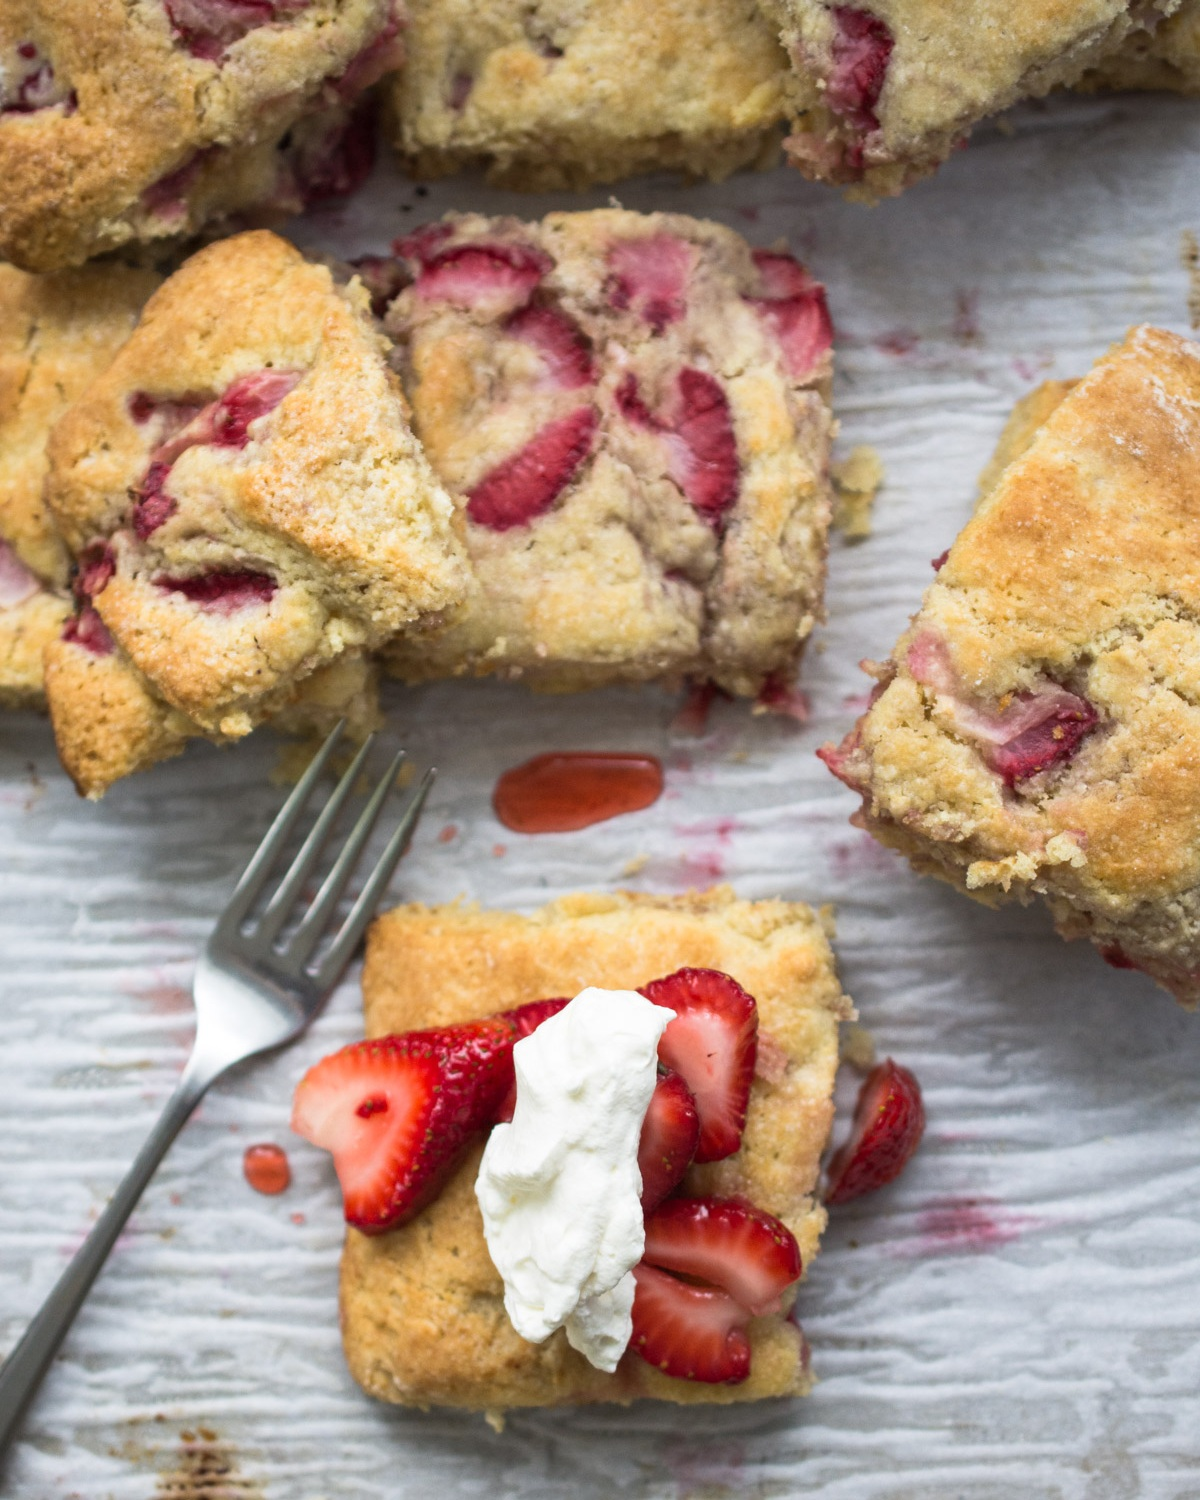 Grandmother's Strawberry Shortcake. Strawberry biscuits, strawberry sauce and whipped cream.